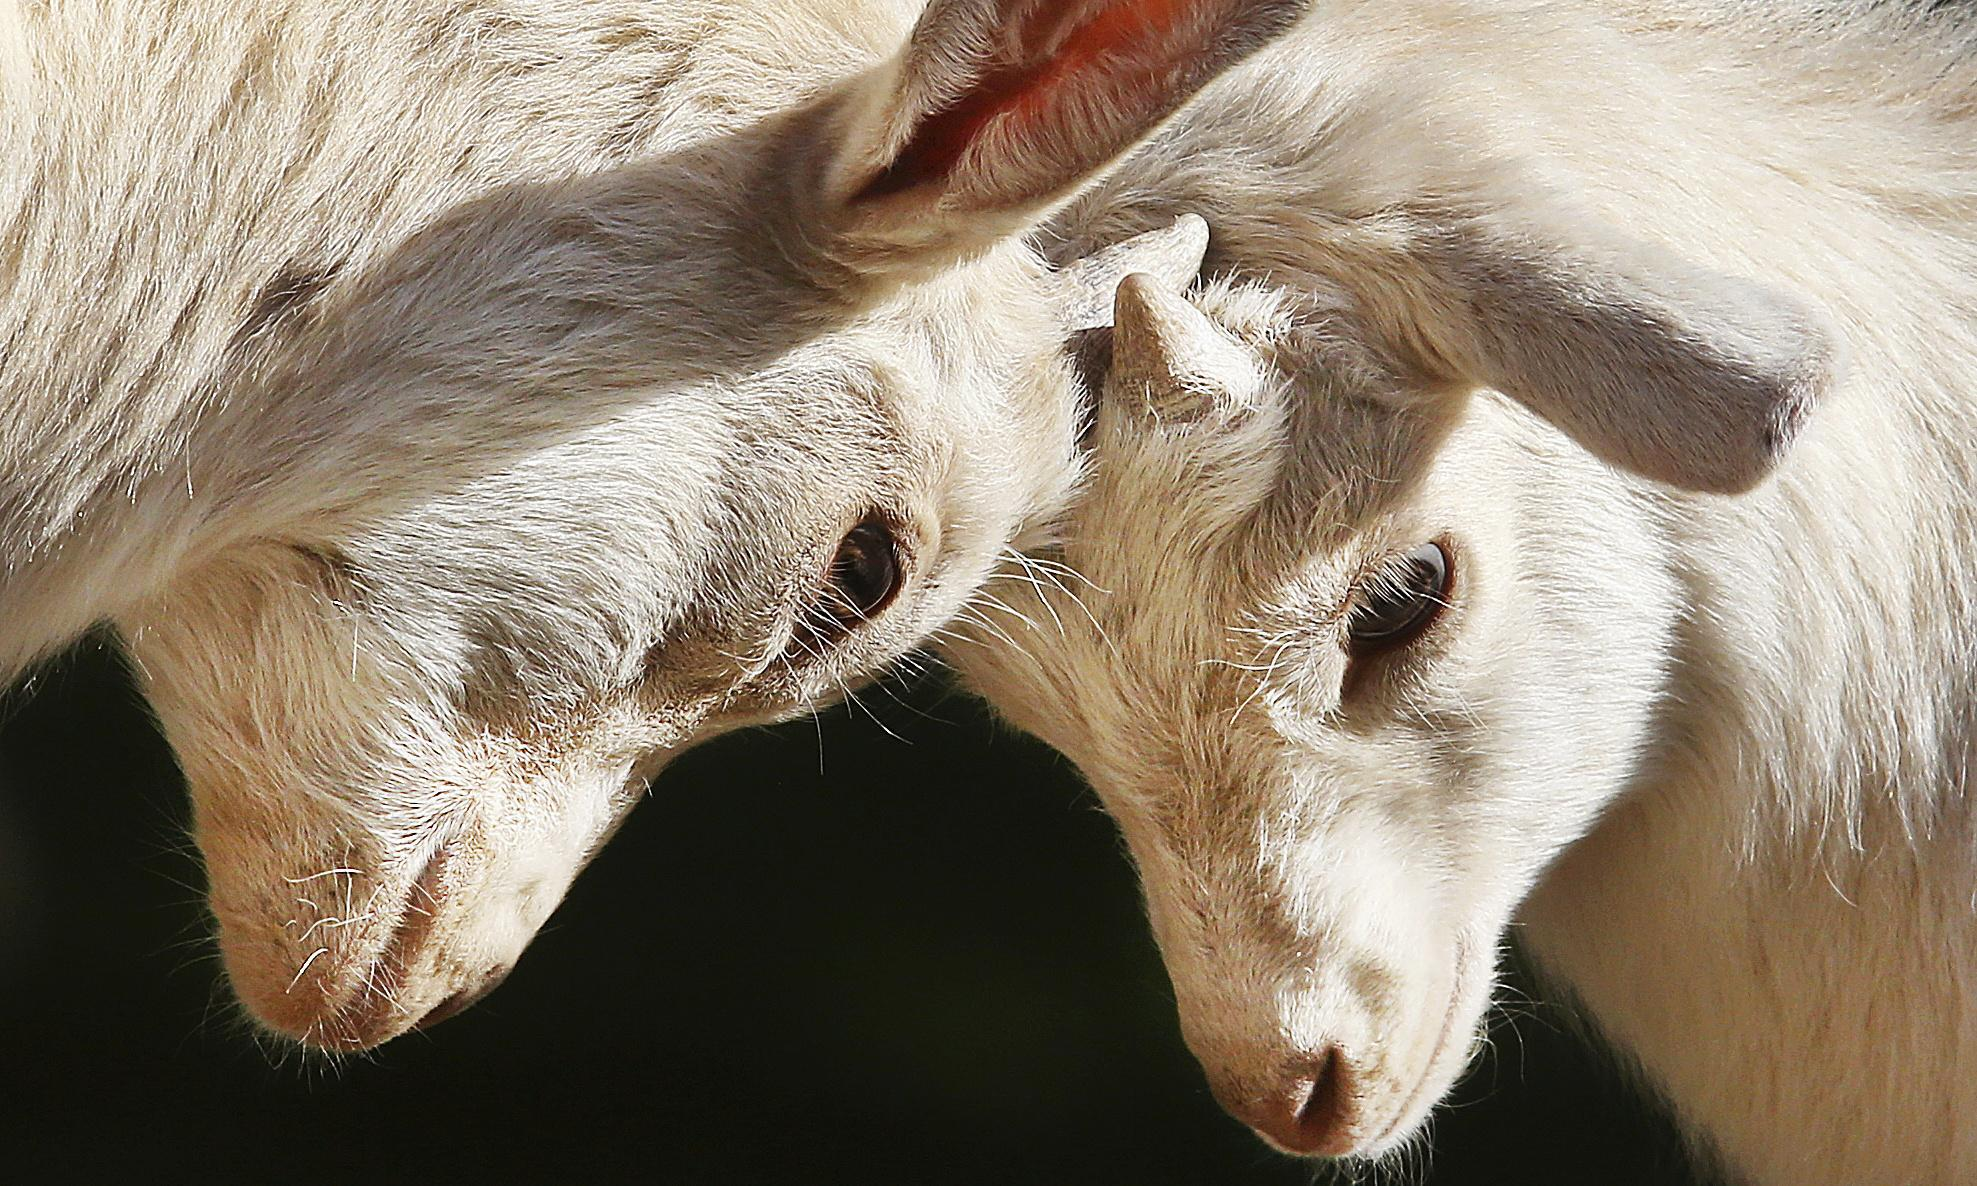 Goats can distinguish emotions from each other's calls – study